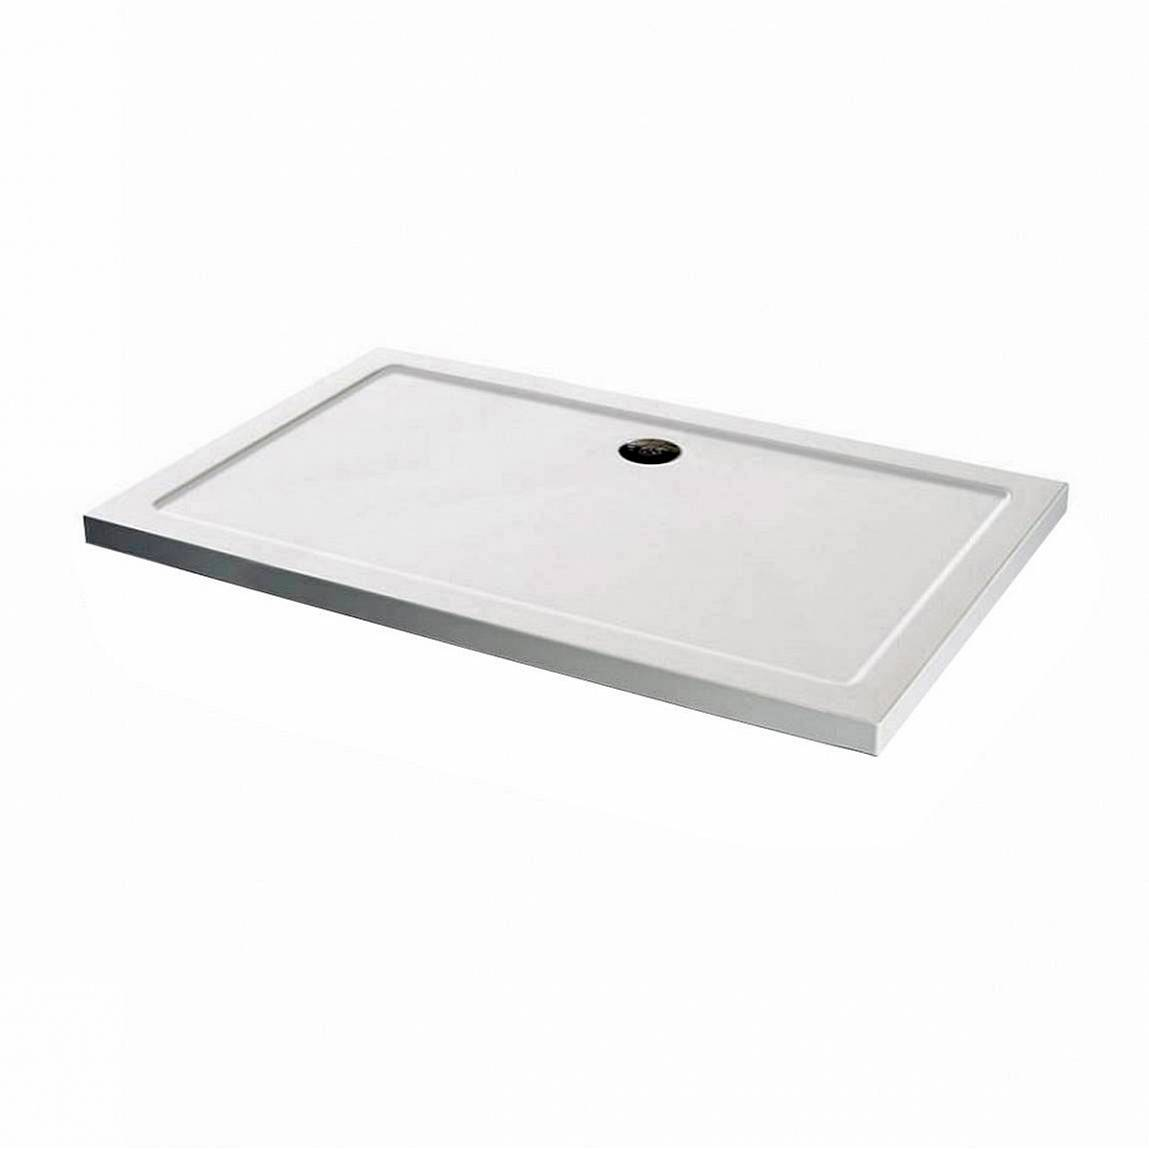 Image of Rectangular Stone Shower Tray 900 x 760